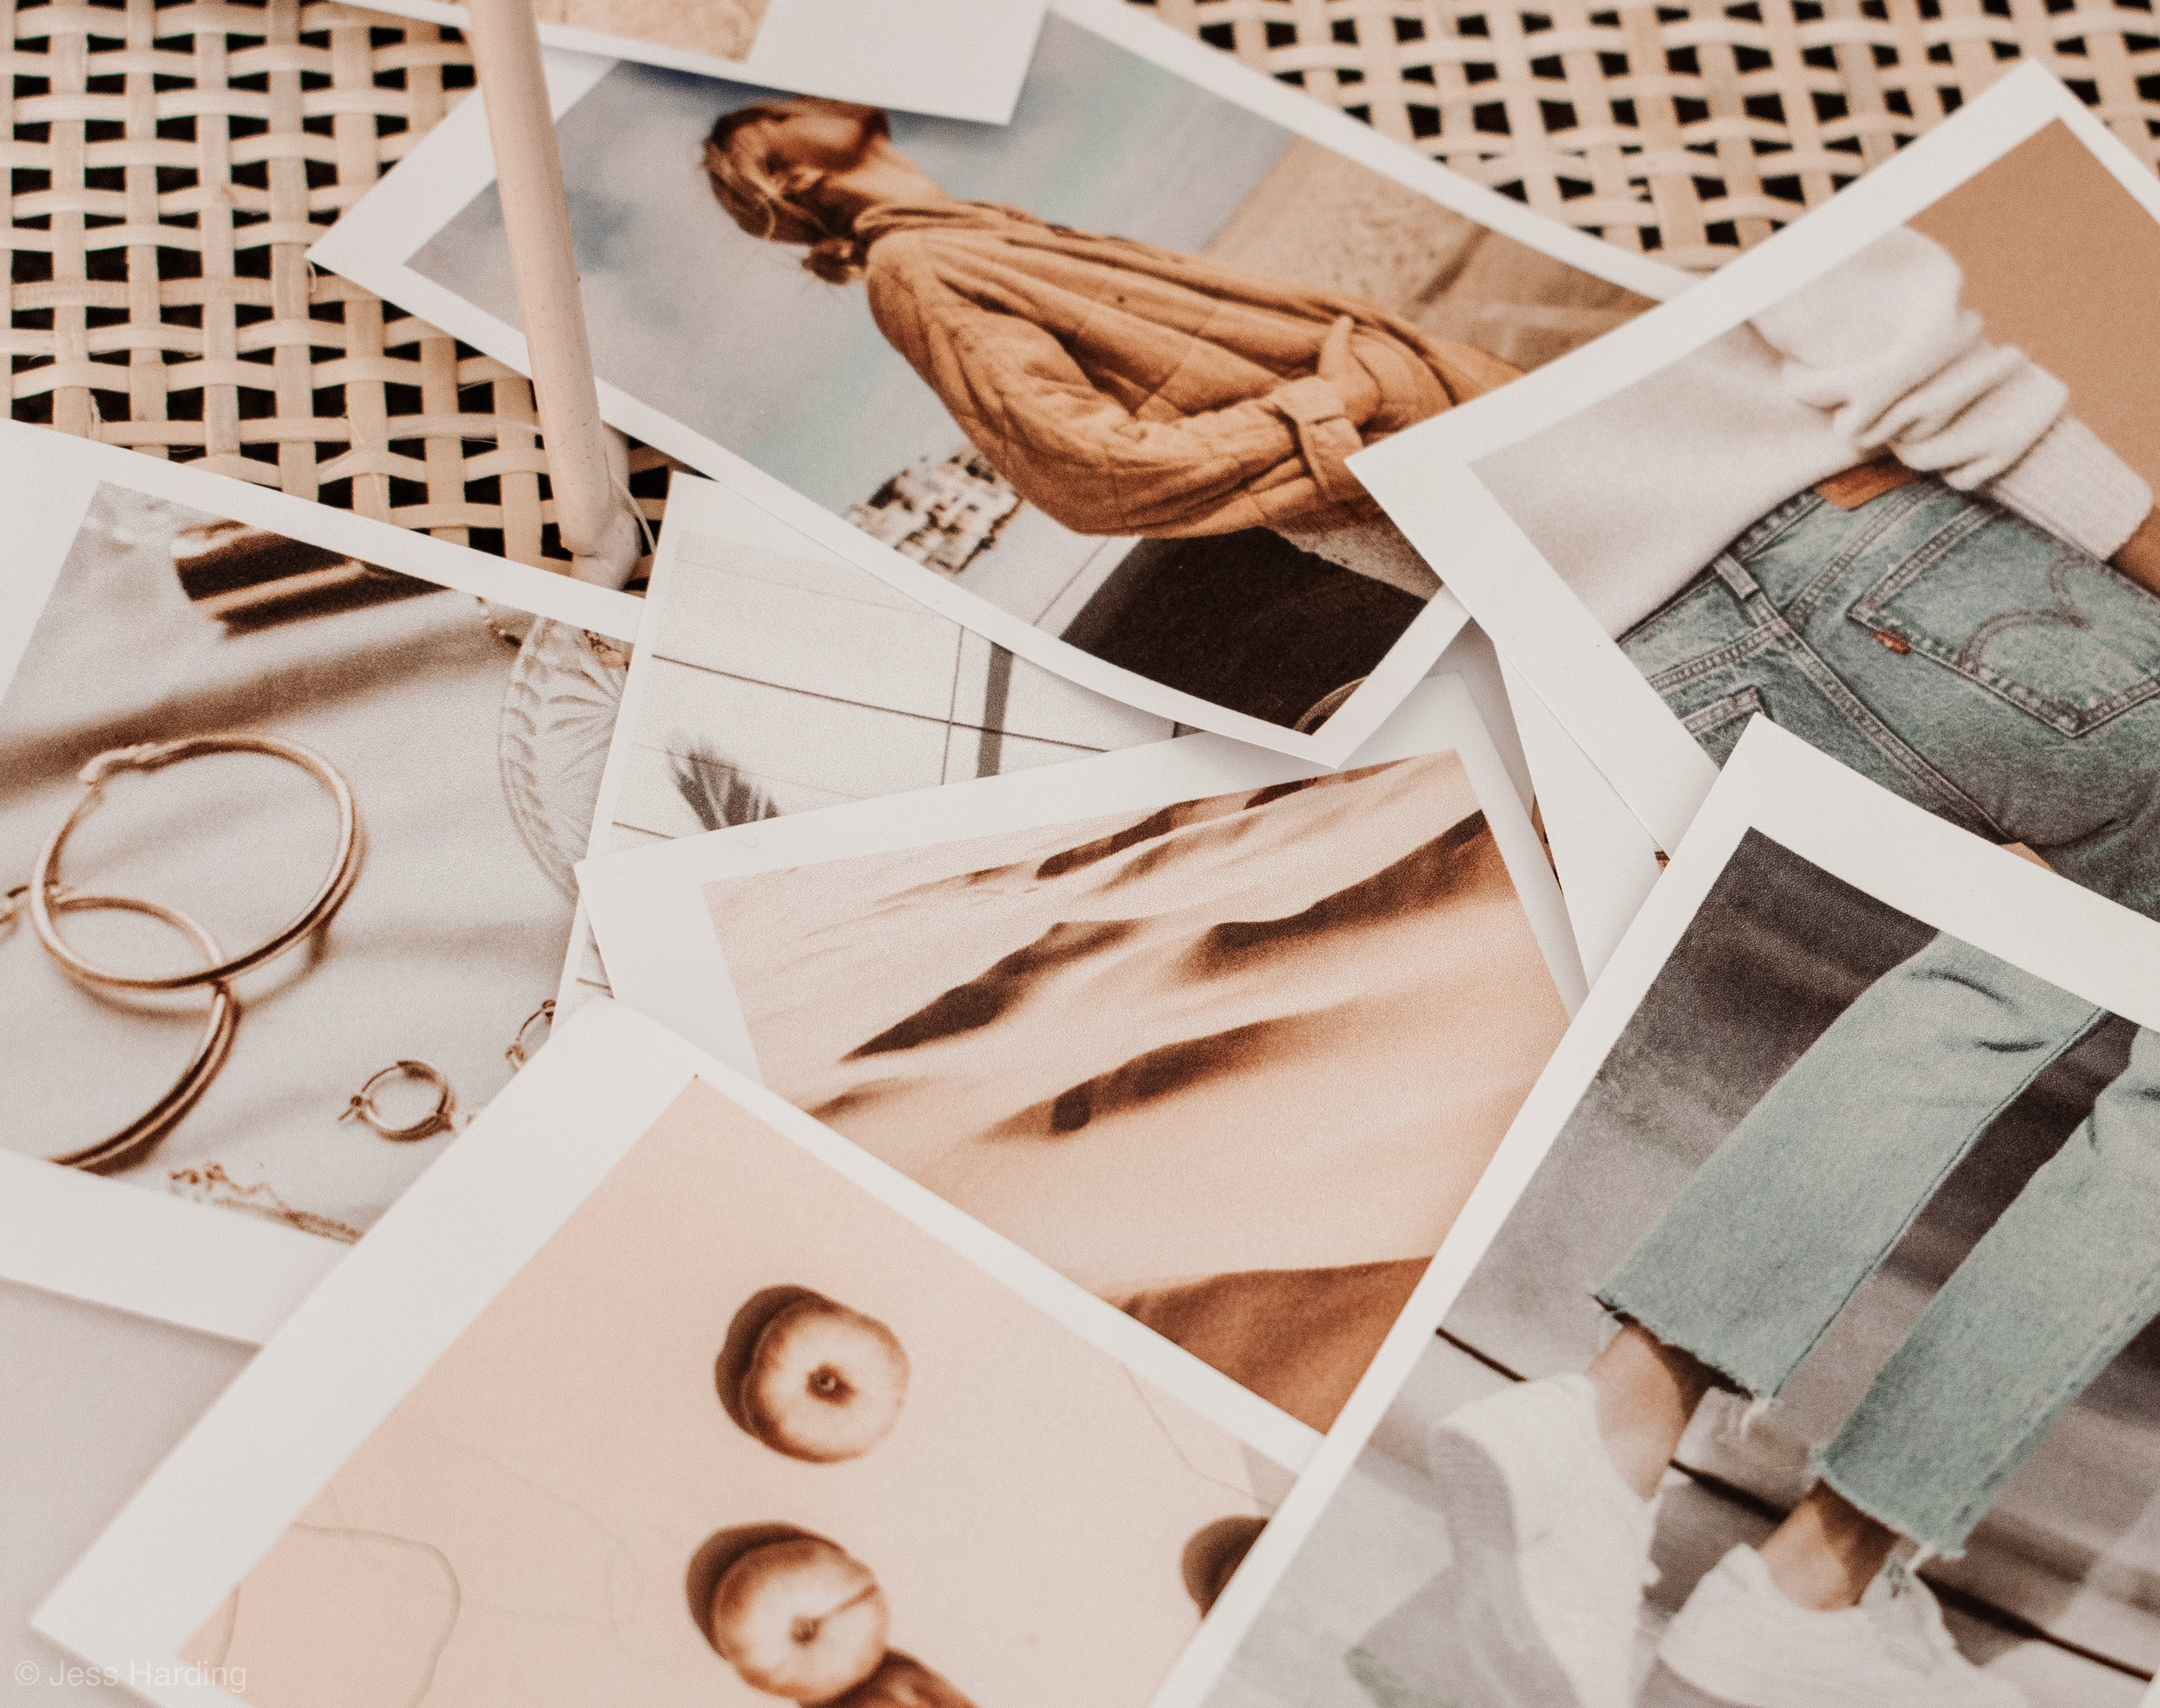 I kept some pictures of my late mother in my nightstand. | Source: Unsplash